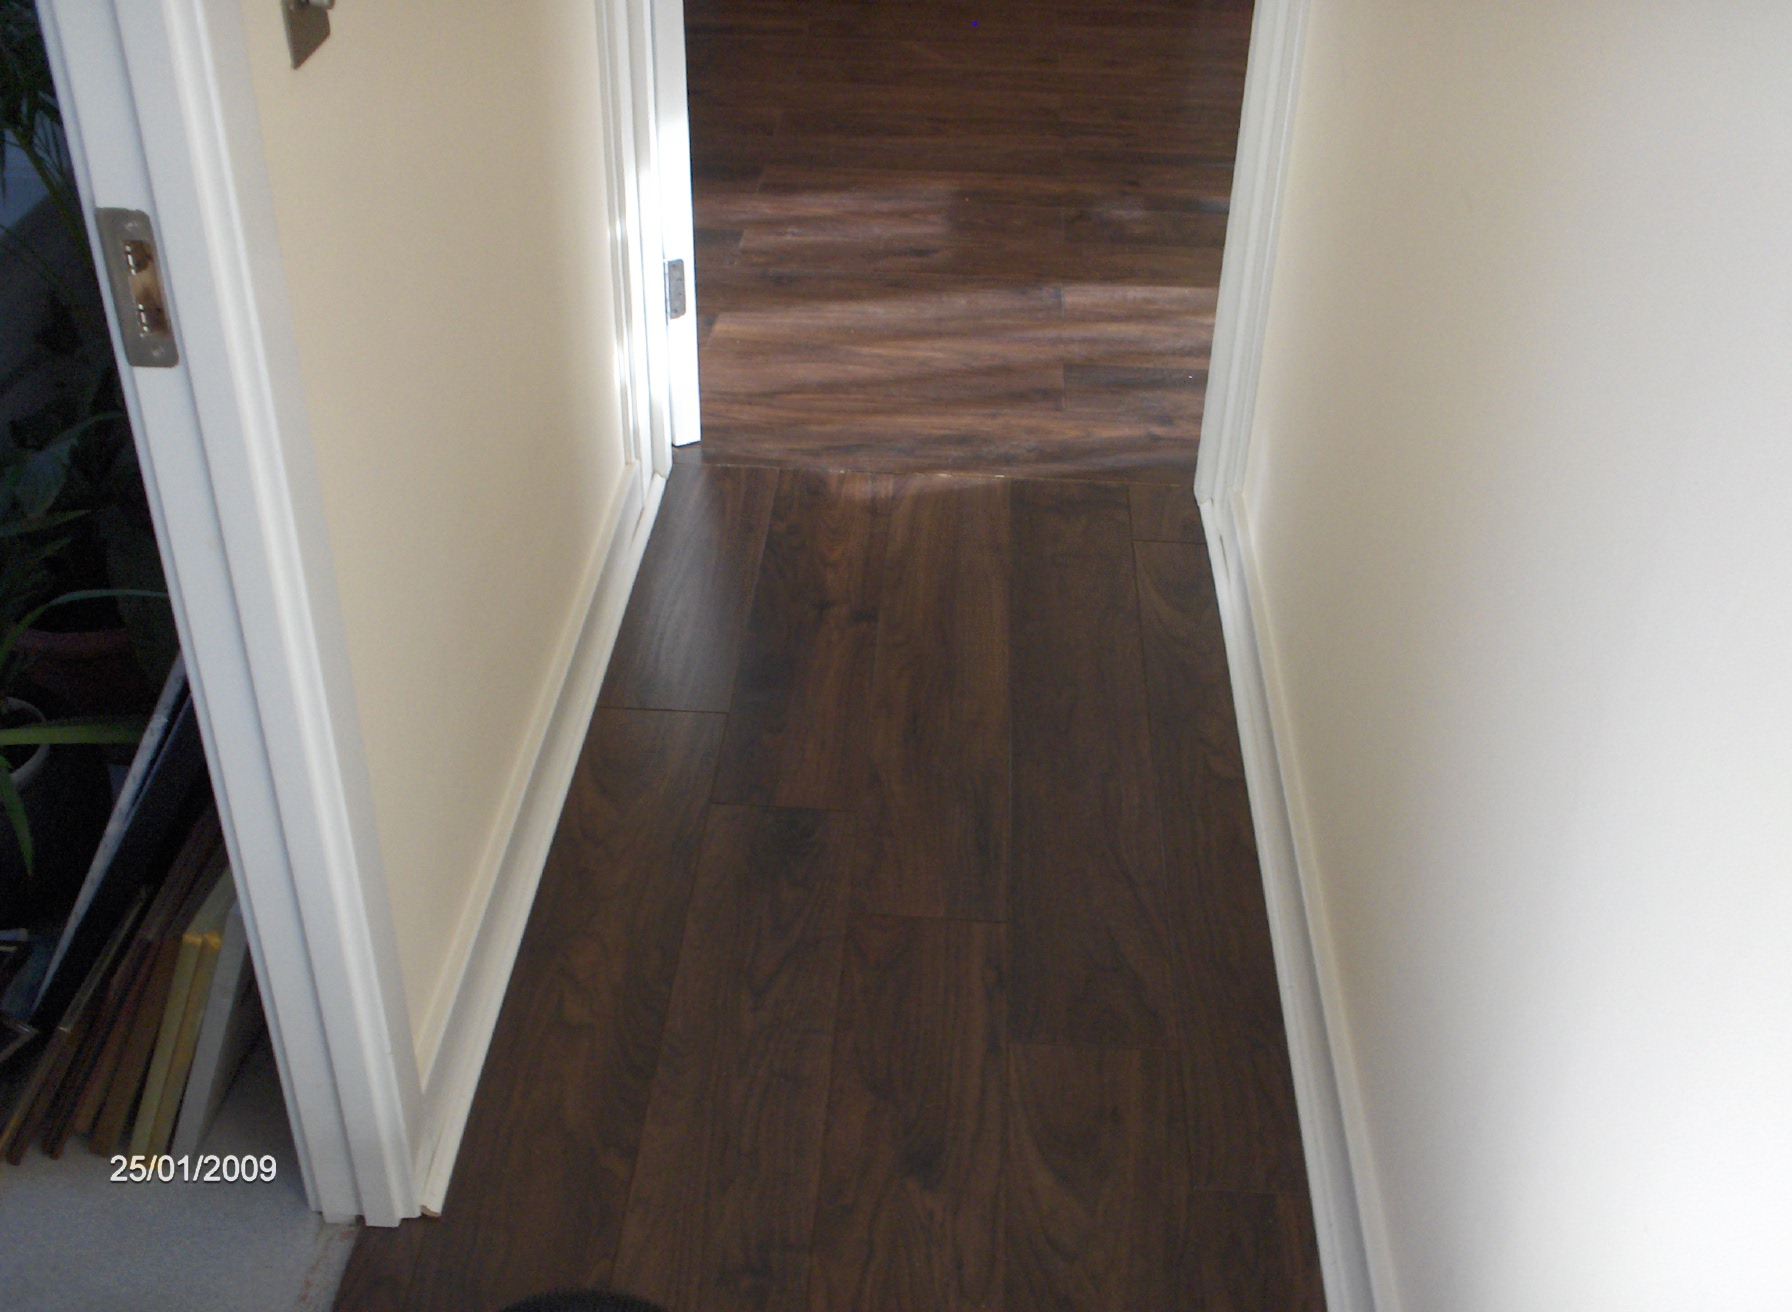 wall nut flooring , carried through into another room